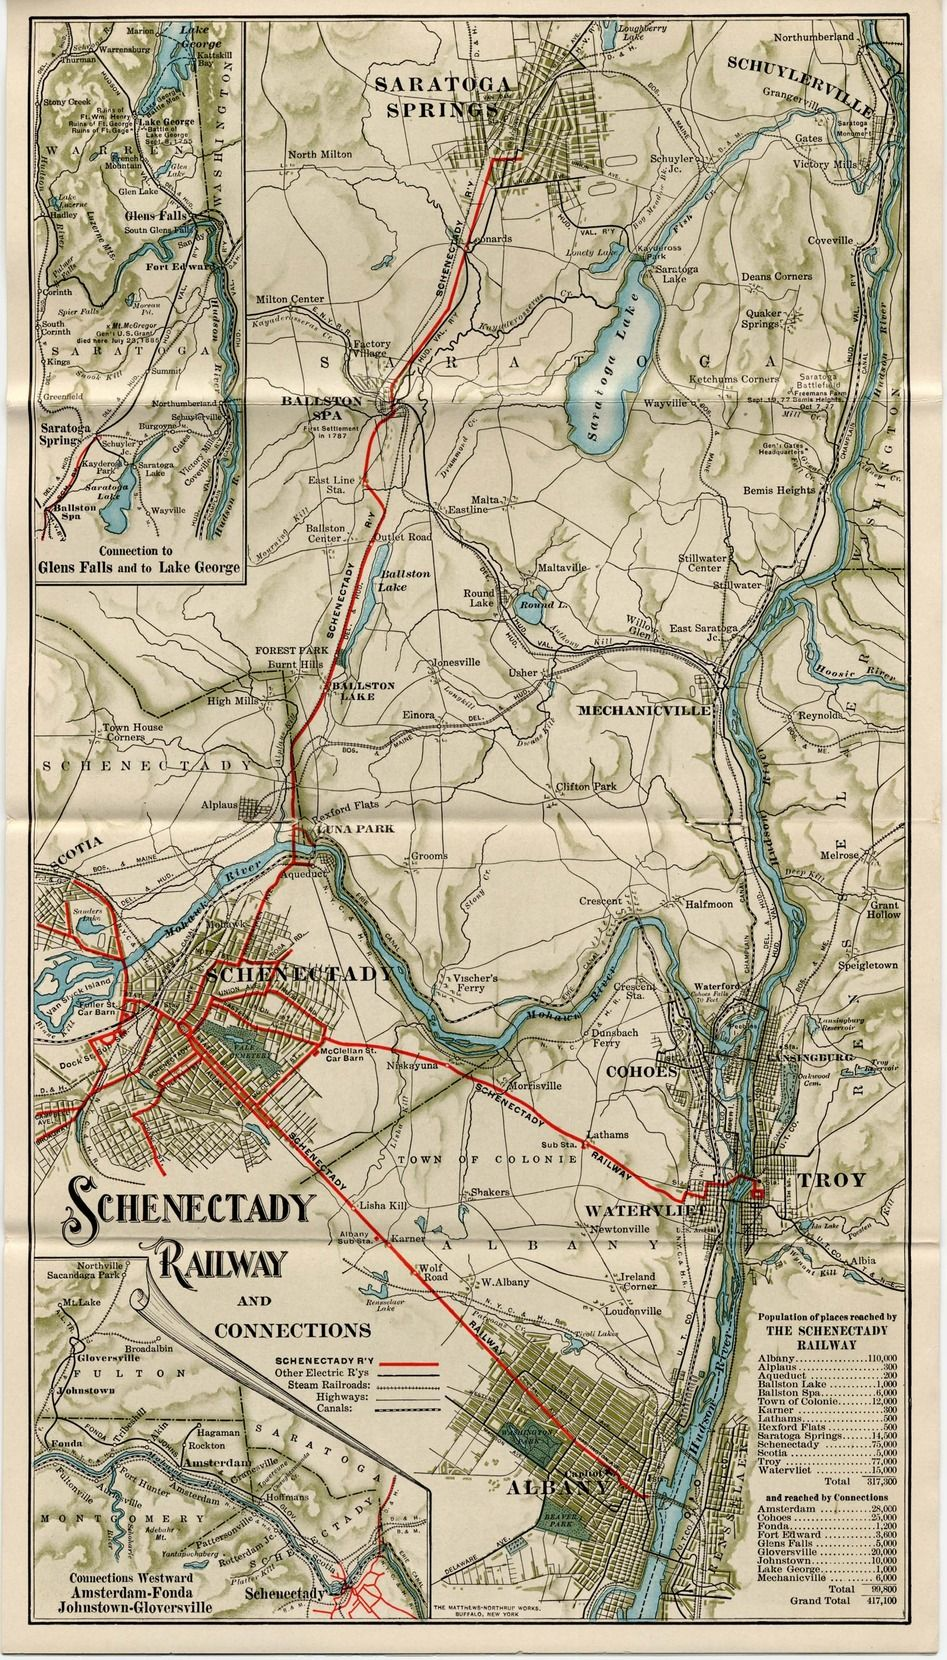 Schenectady Railway and Connections map from 1910s Maps Pinterest